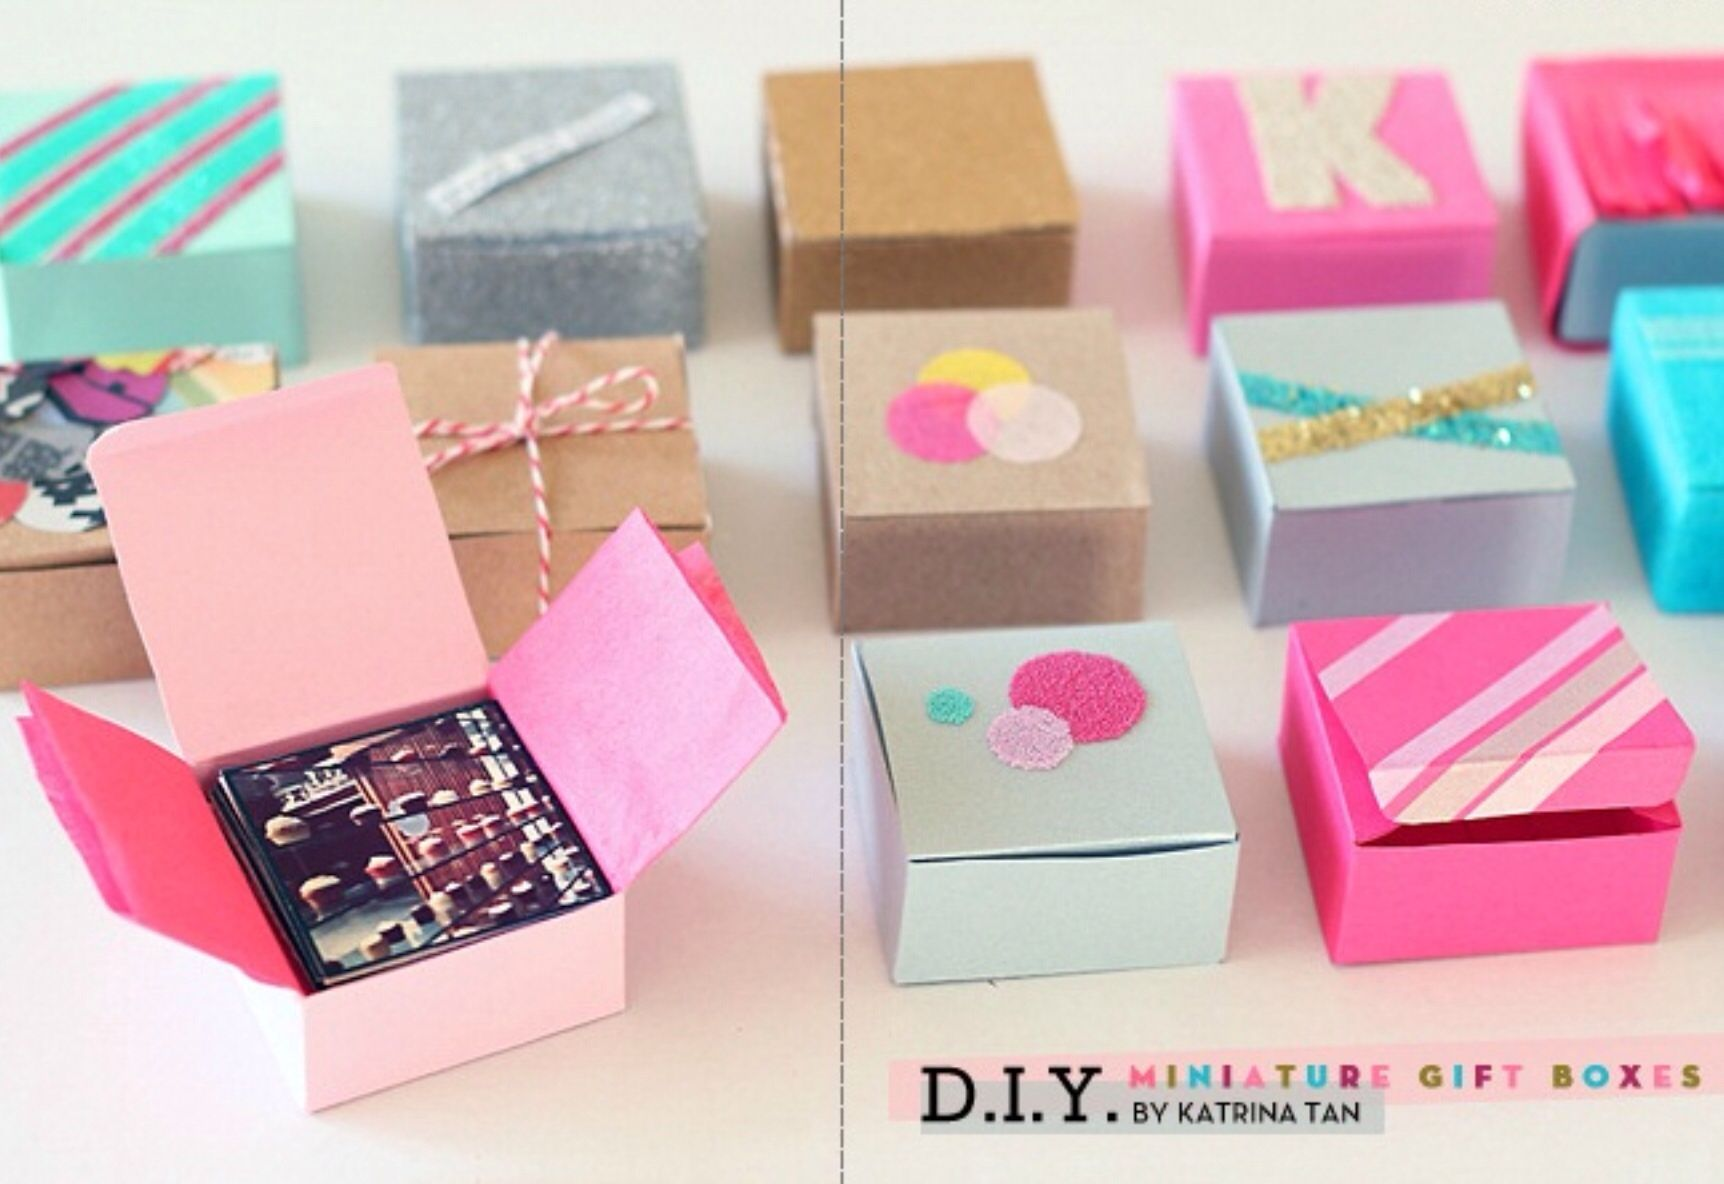 DIY Mini Boxes Diy holiday gifts, Instagram diy, Gifts